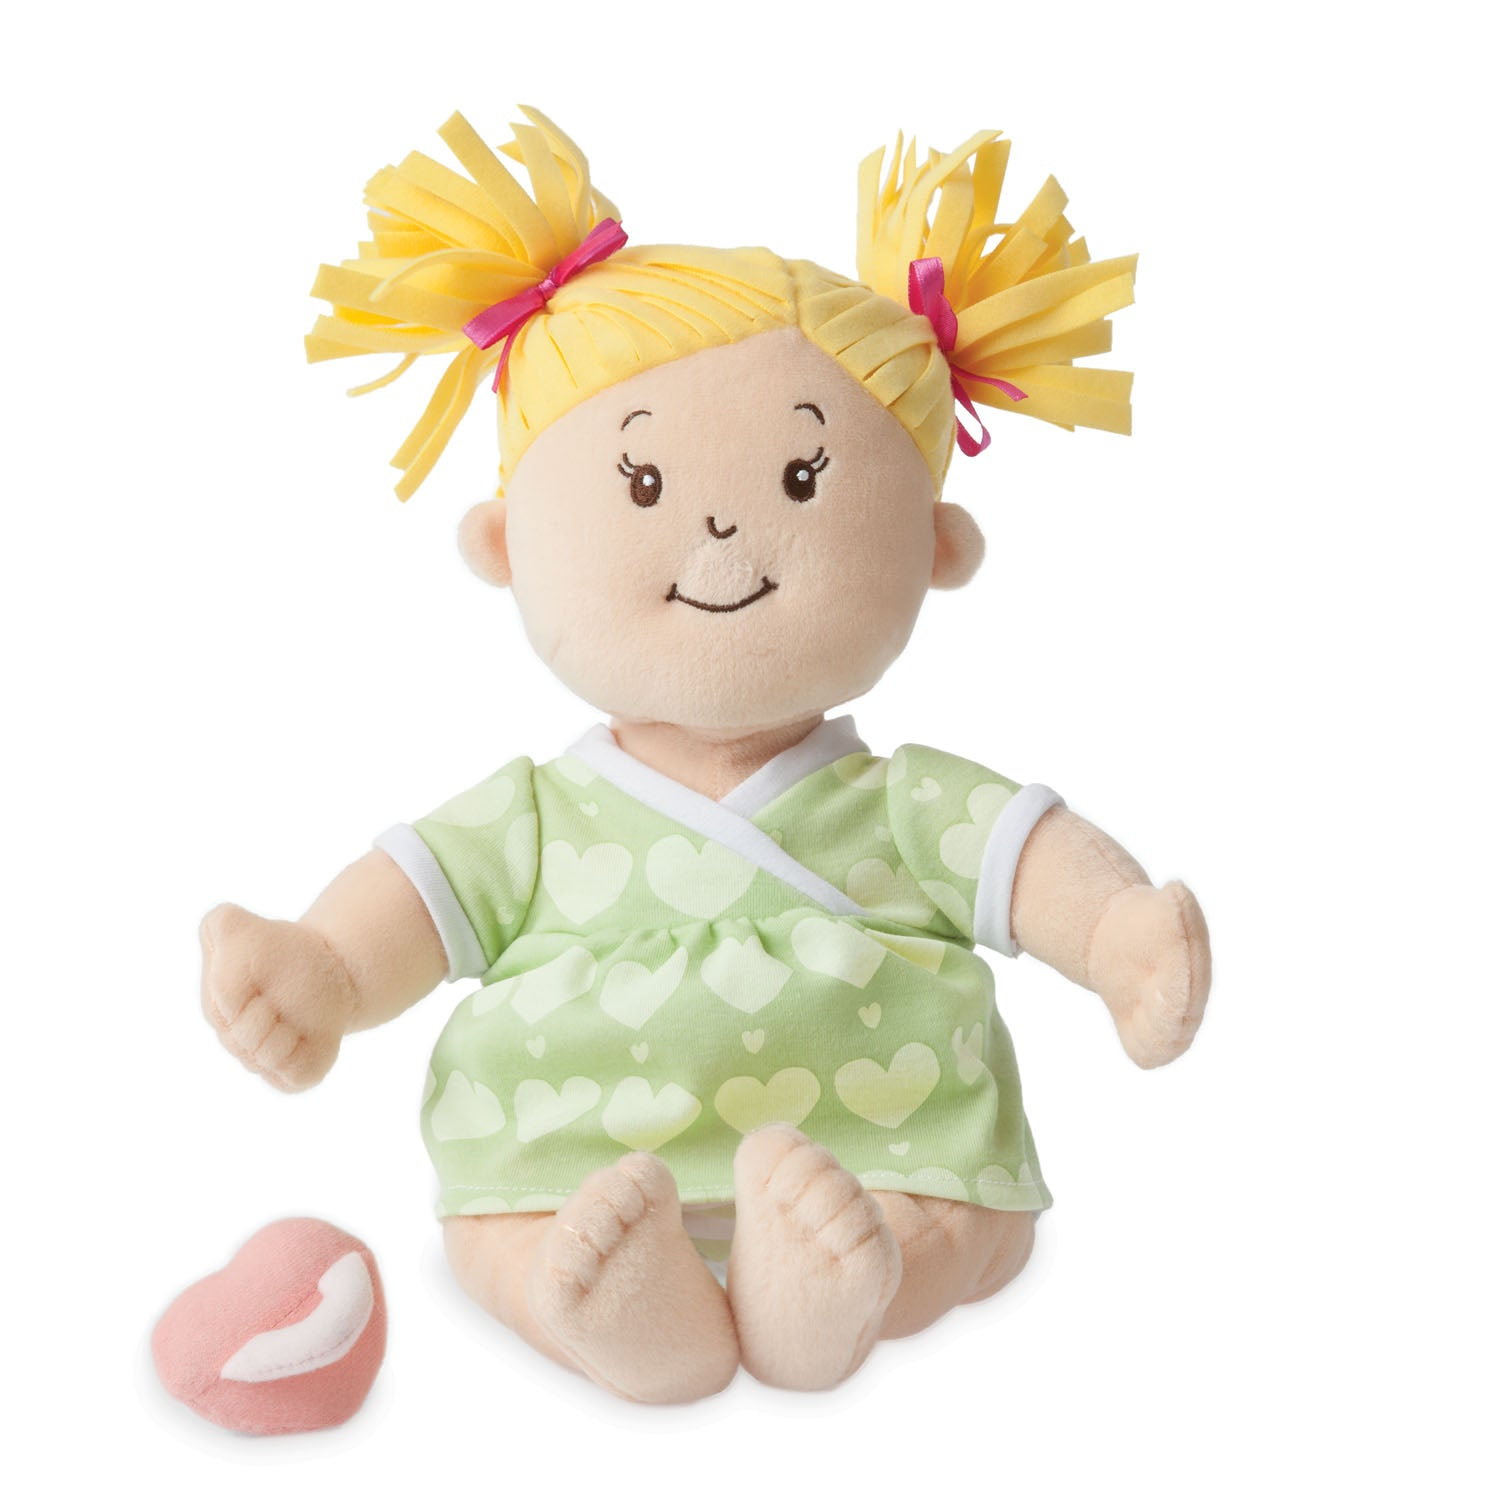 Baby Doll Baby Stella Blonde Soft Nurturing By Manhattan